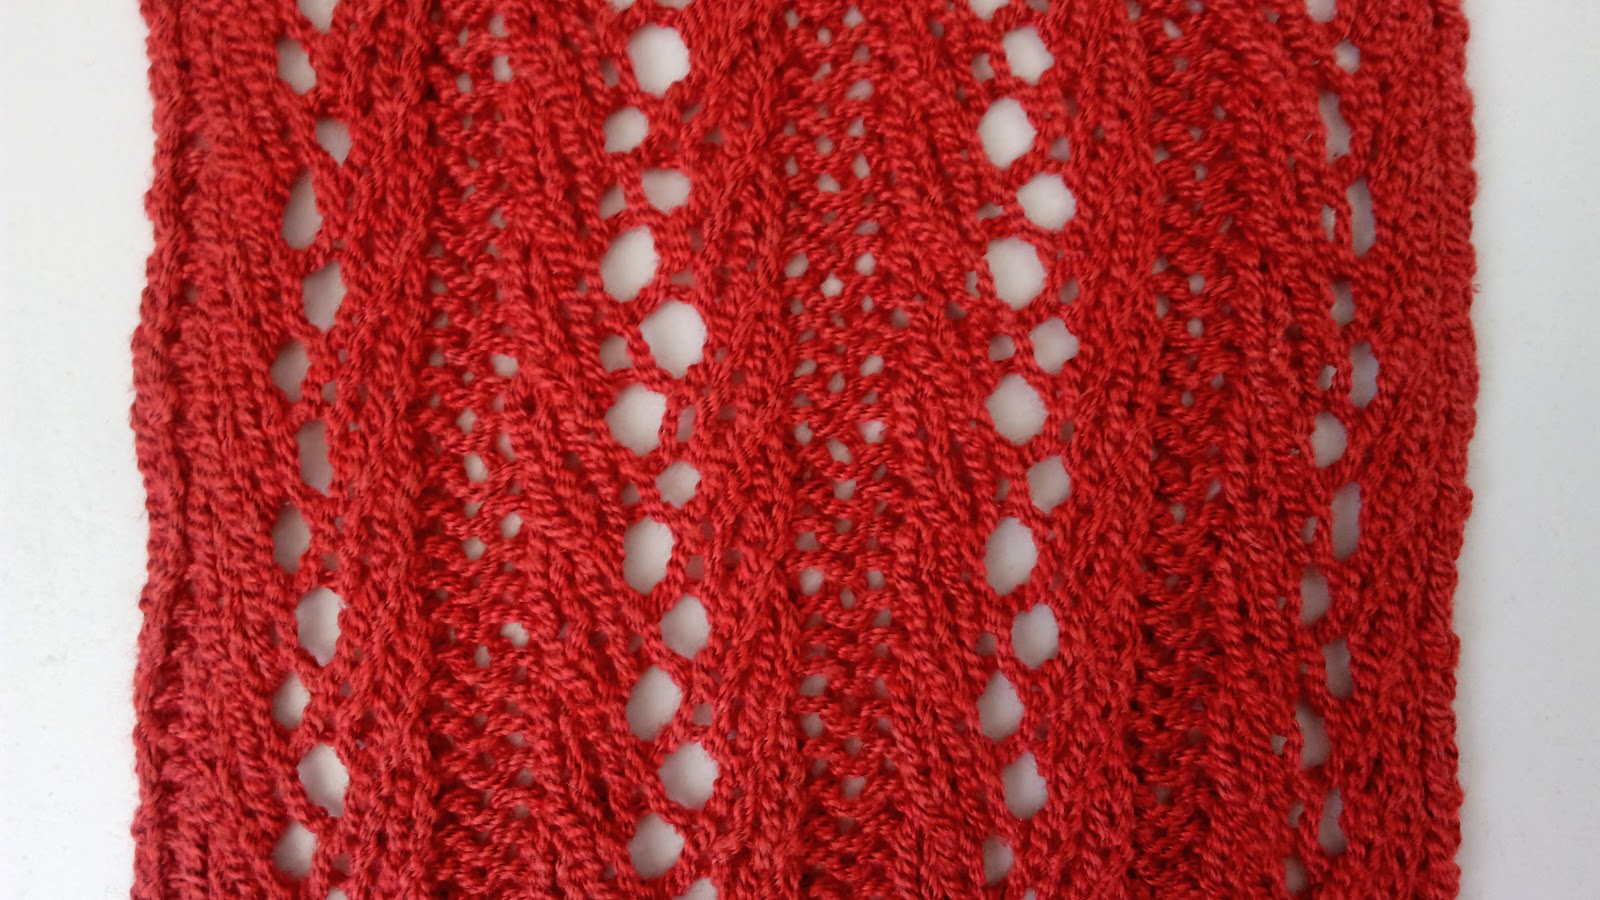 Lace Stripes - Knitting Stitch